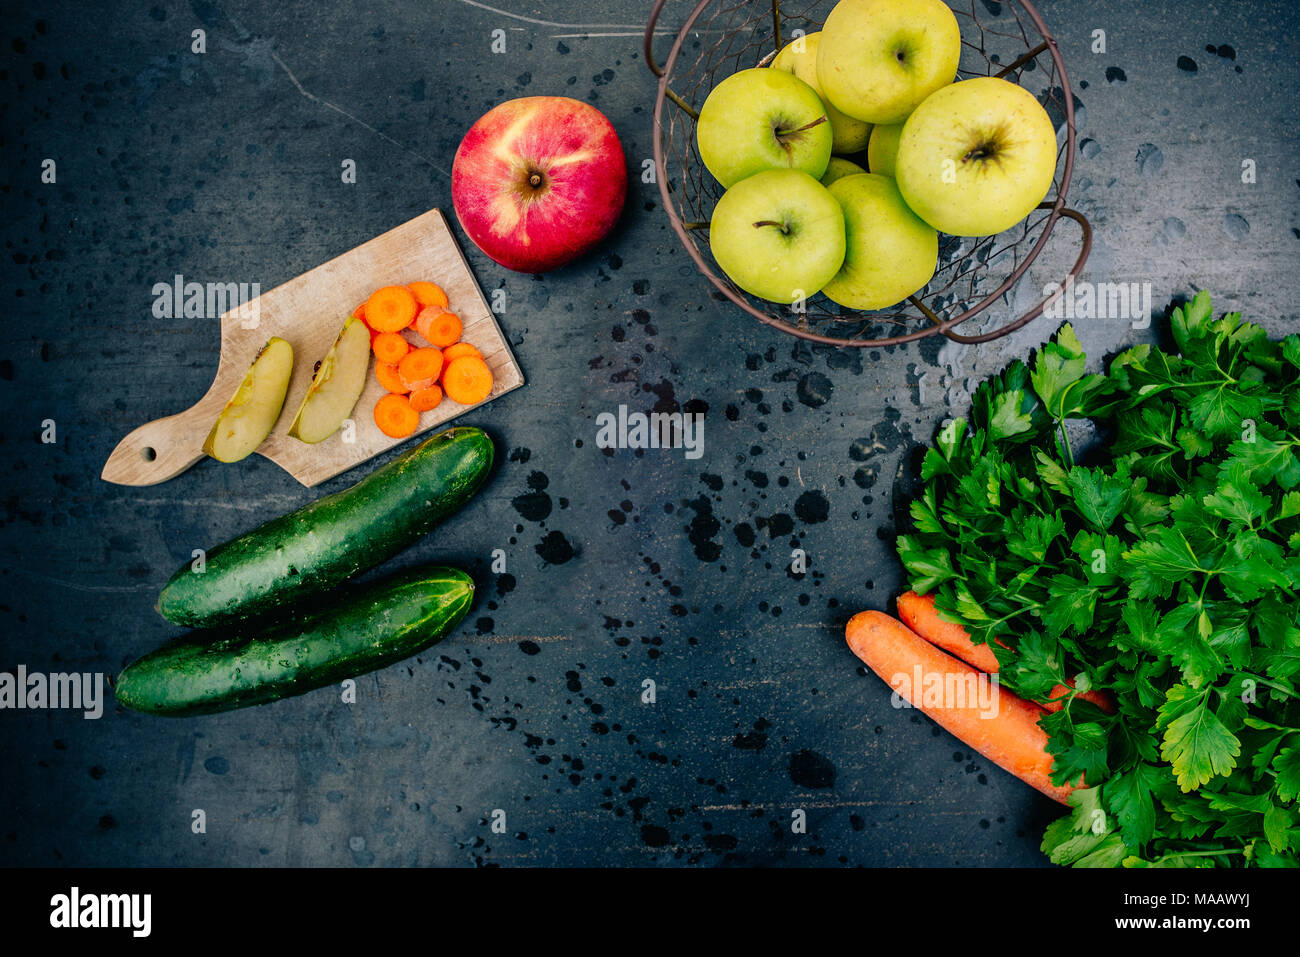 Fresh fruits and vegetables on black metal surface - Stock Image